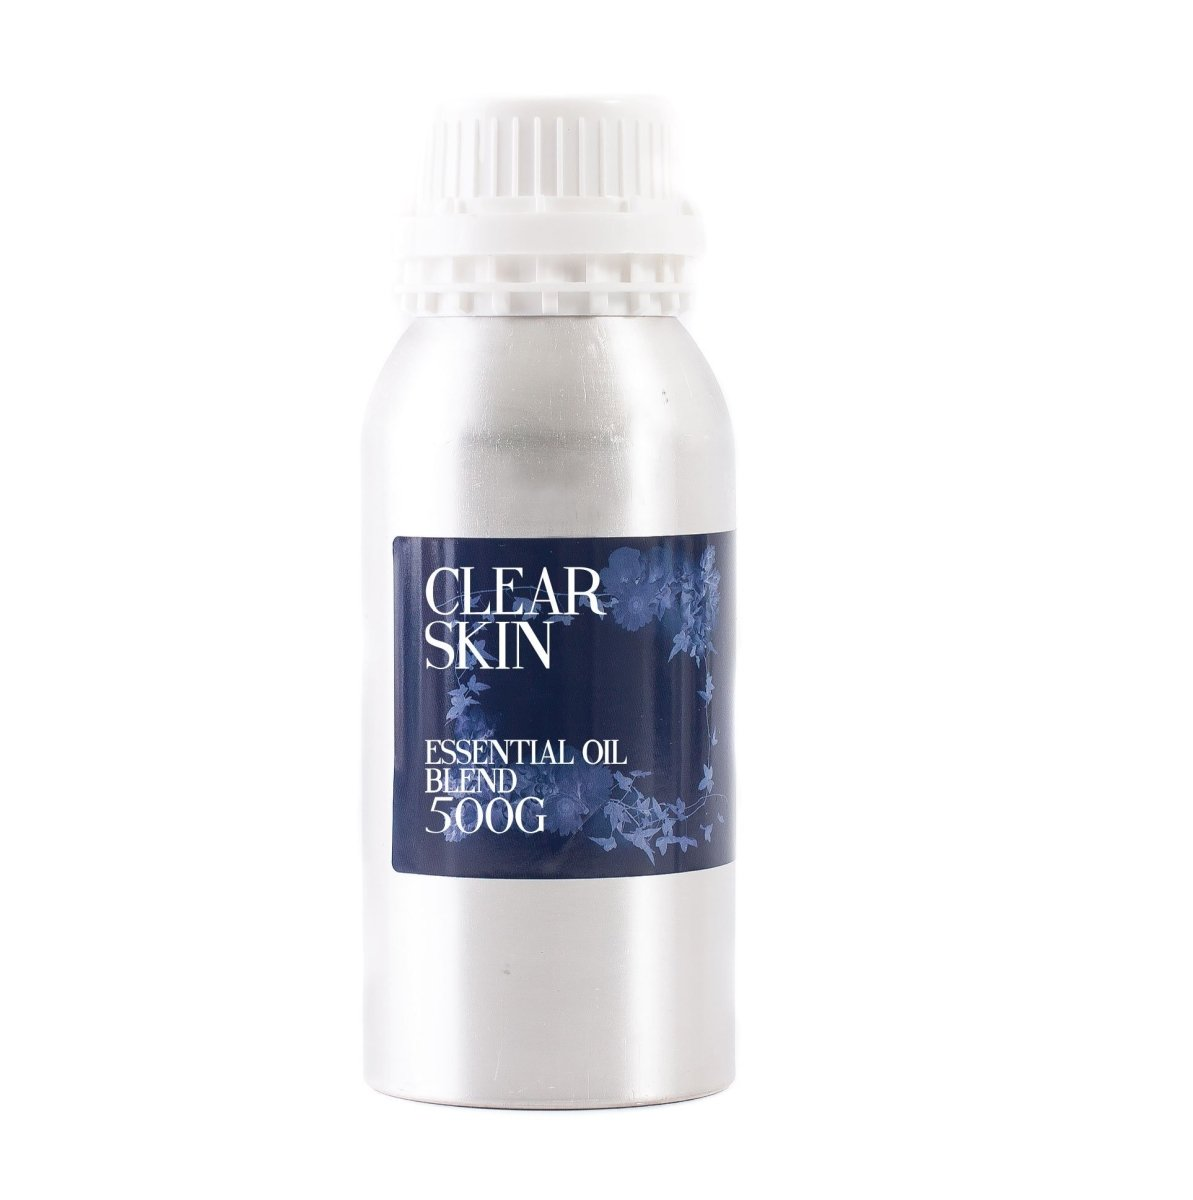 Clear Skin - Essential Oil Blends - Mystic Moments UK